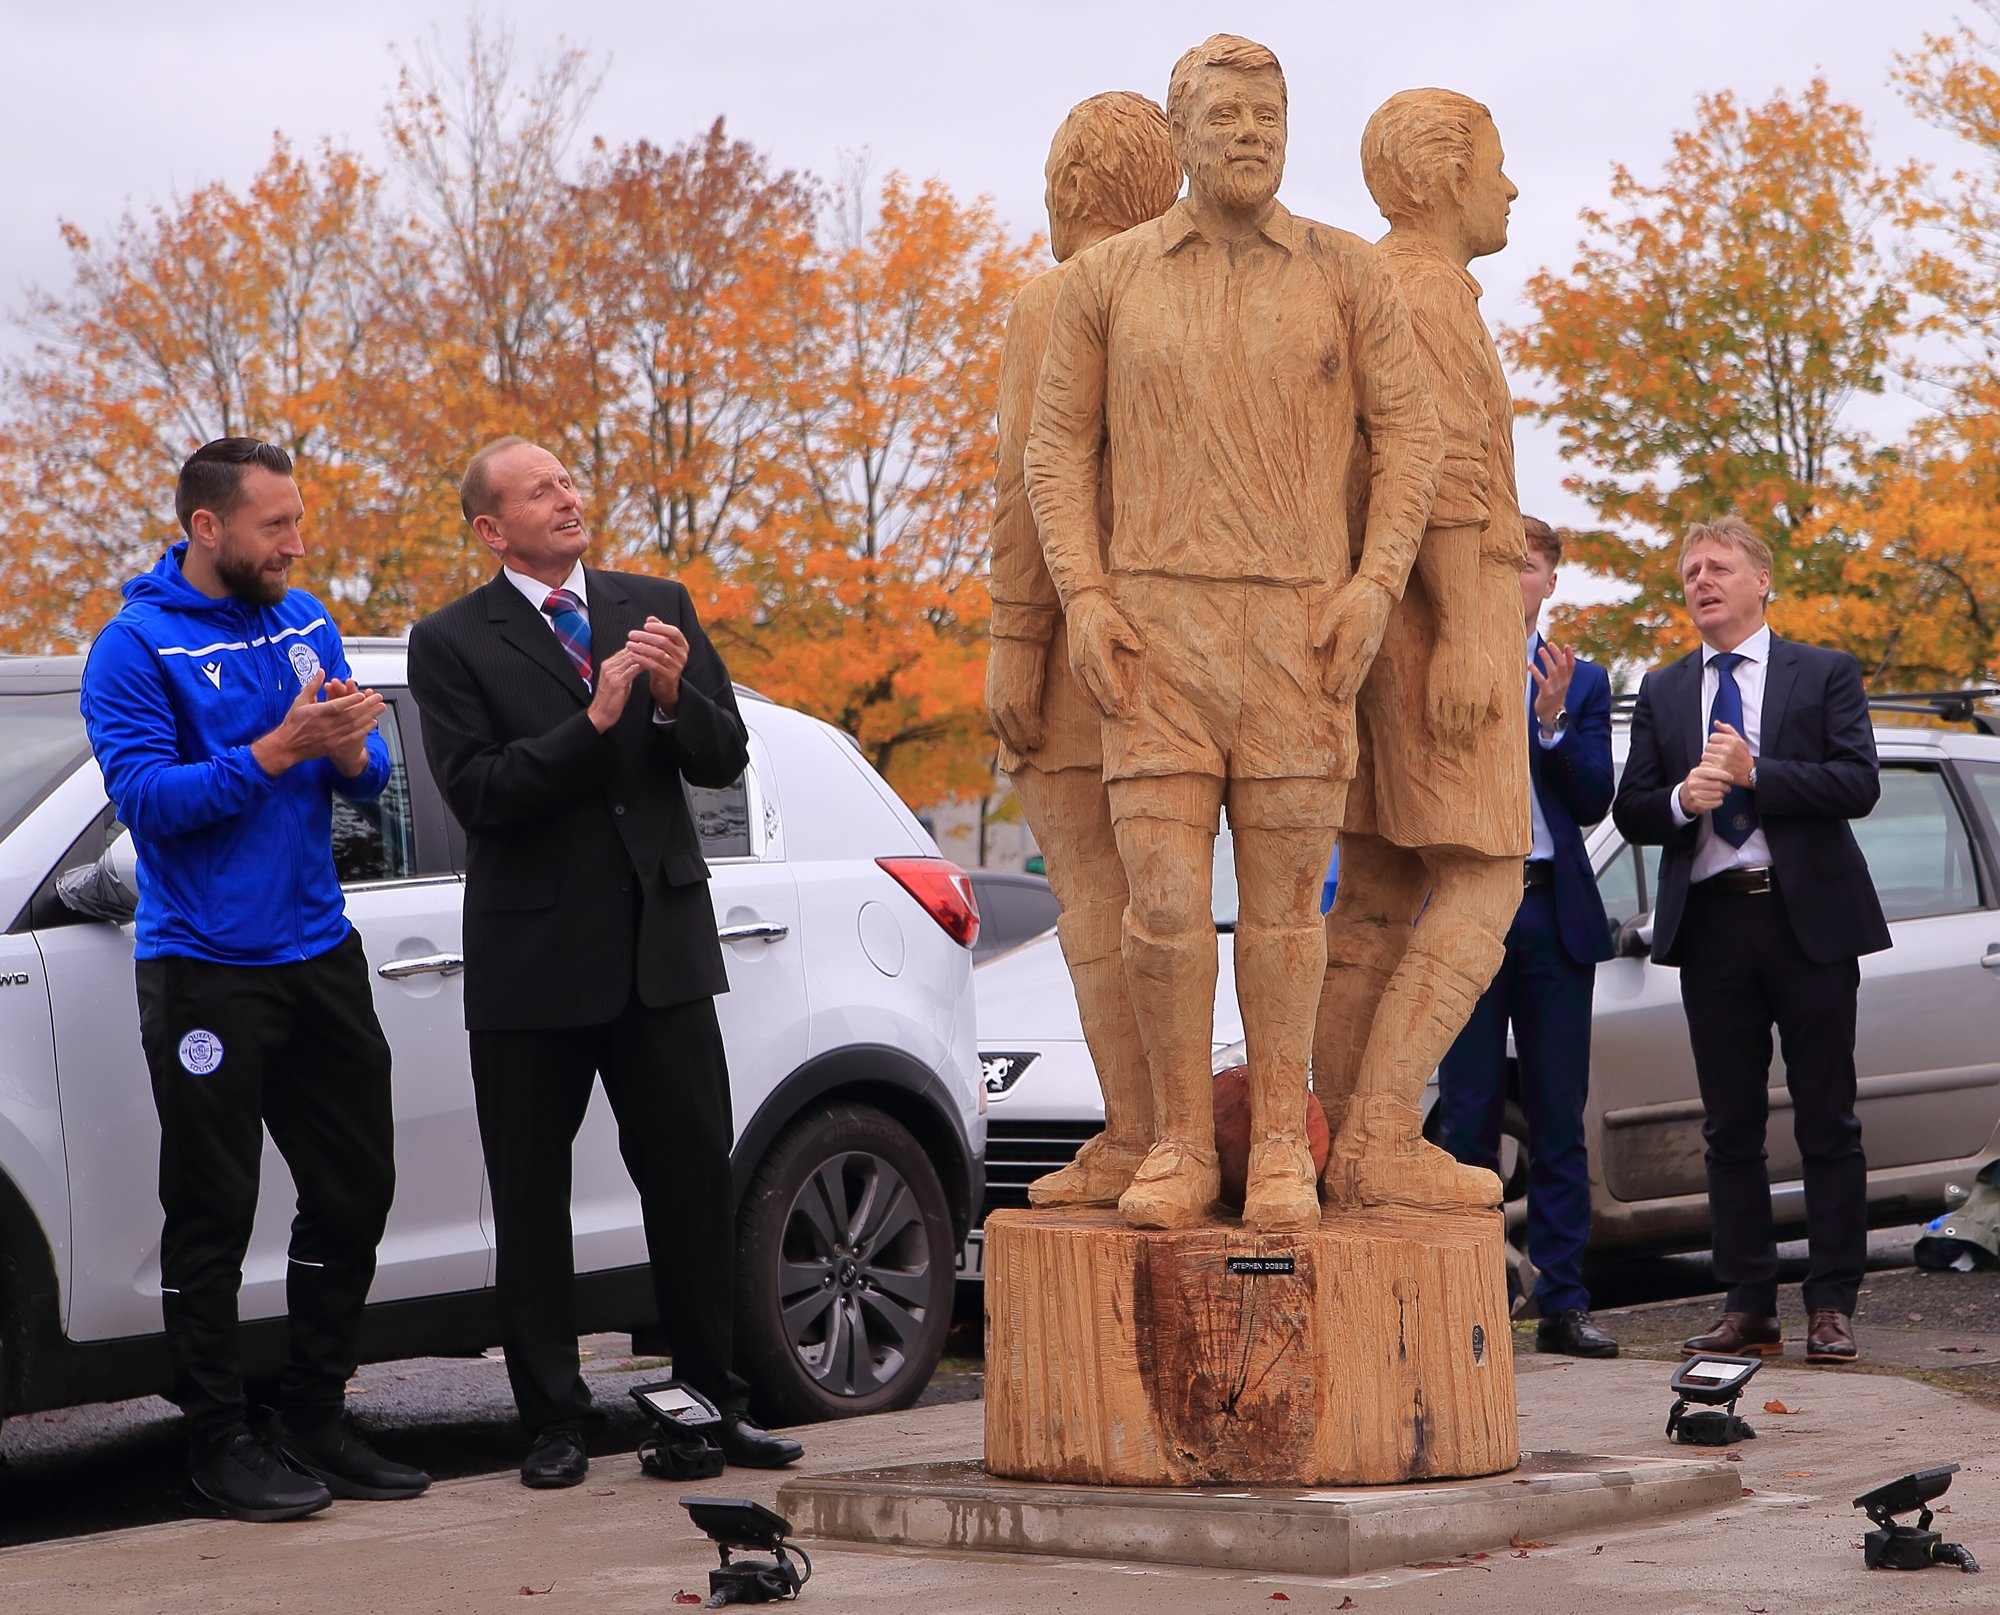 sporting sculptures made by simon o'rourke. Photo shows sculpture of three soccer players standing back to back with onlookers admiring the piece